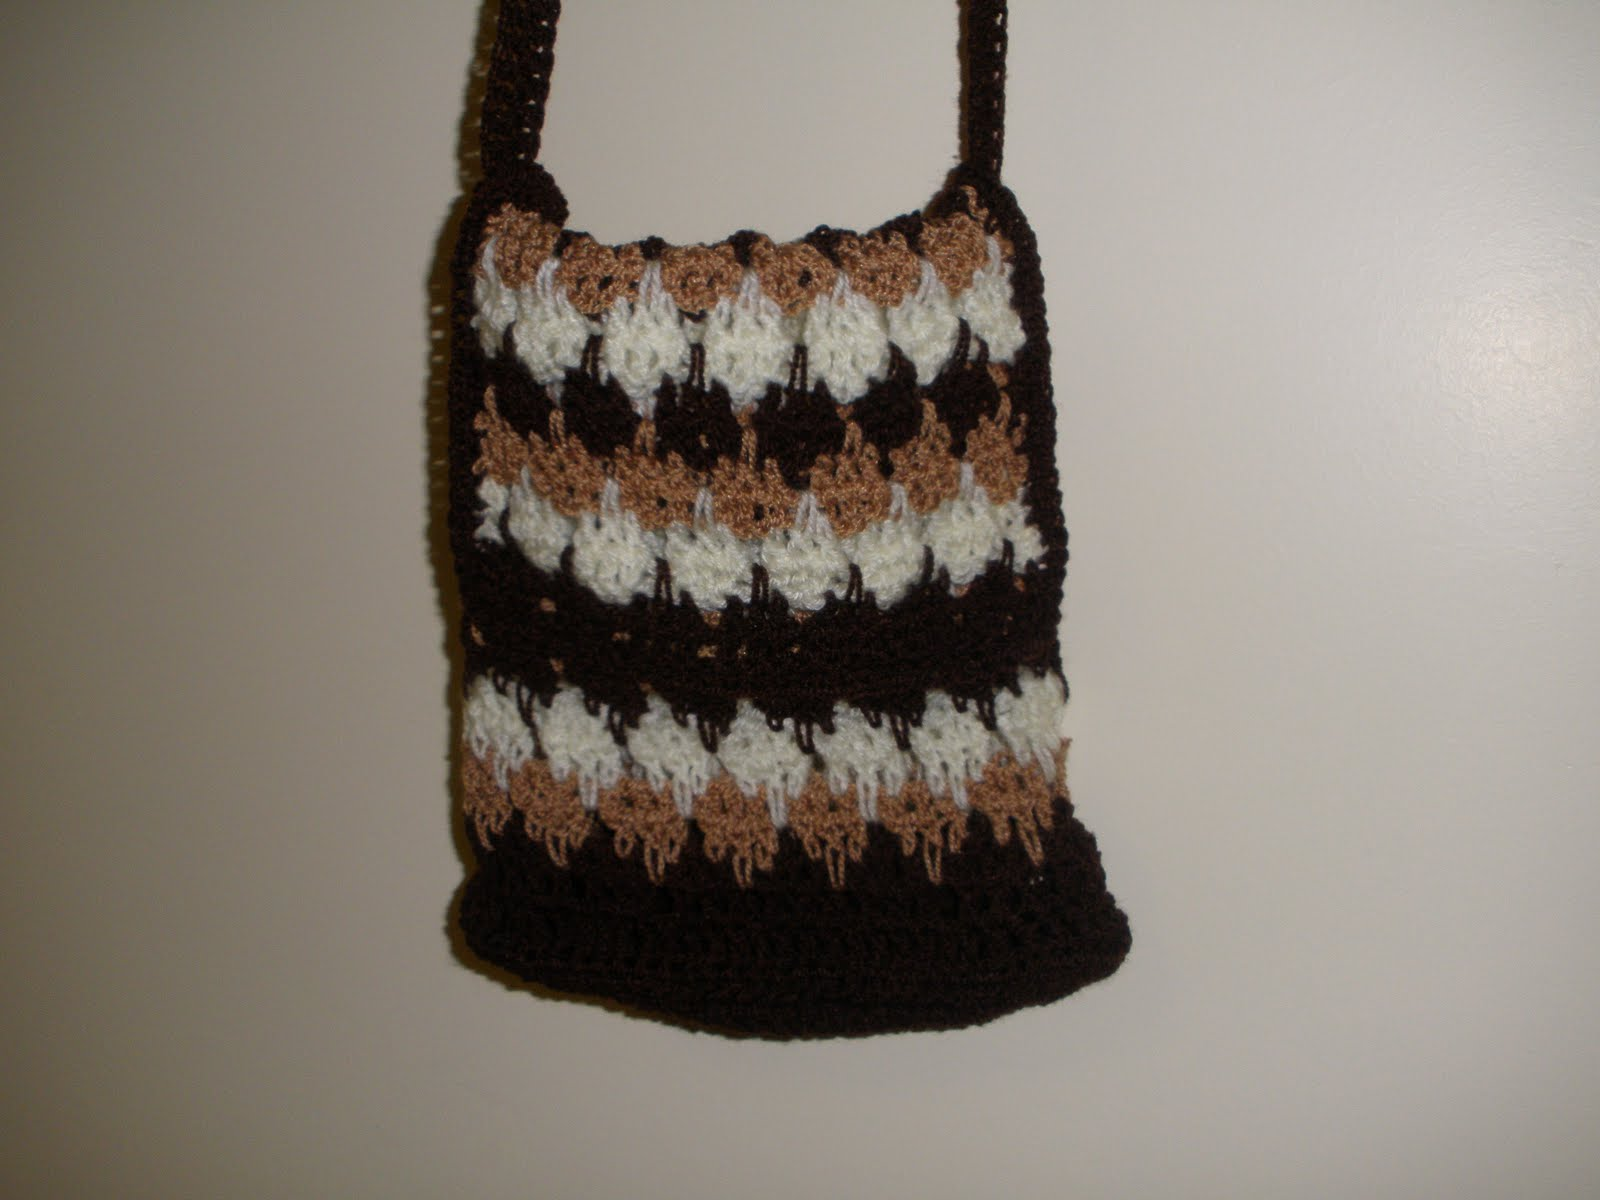 Rose Garden Crochet: Crochet Sling Bag